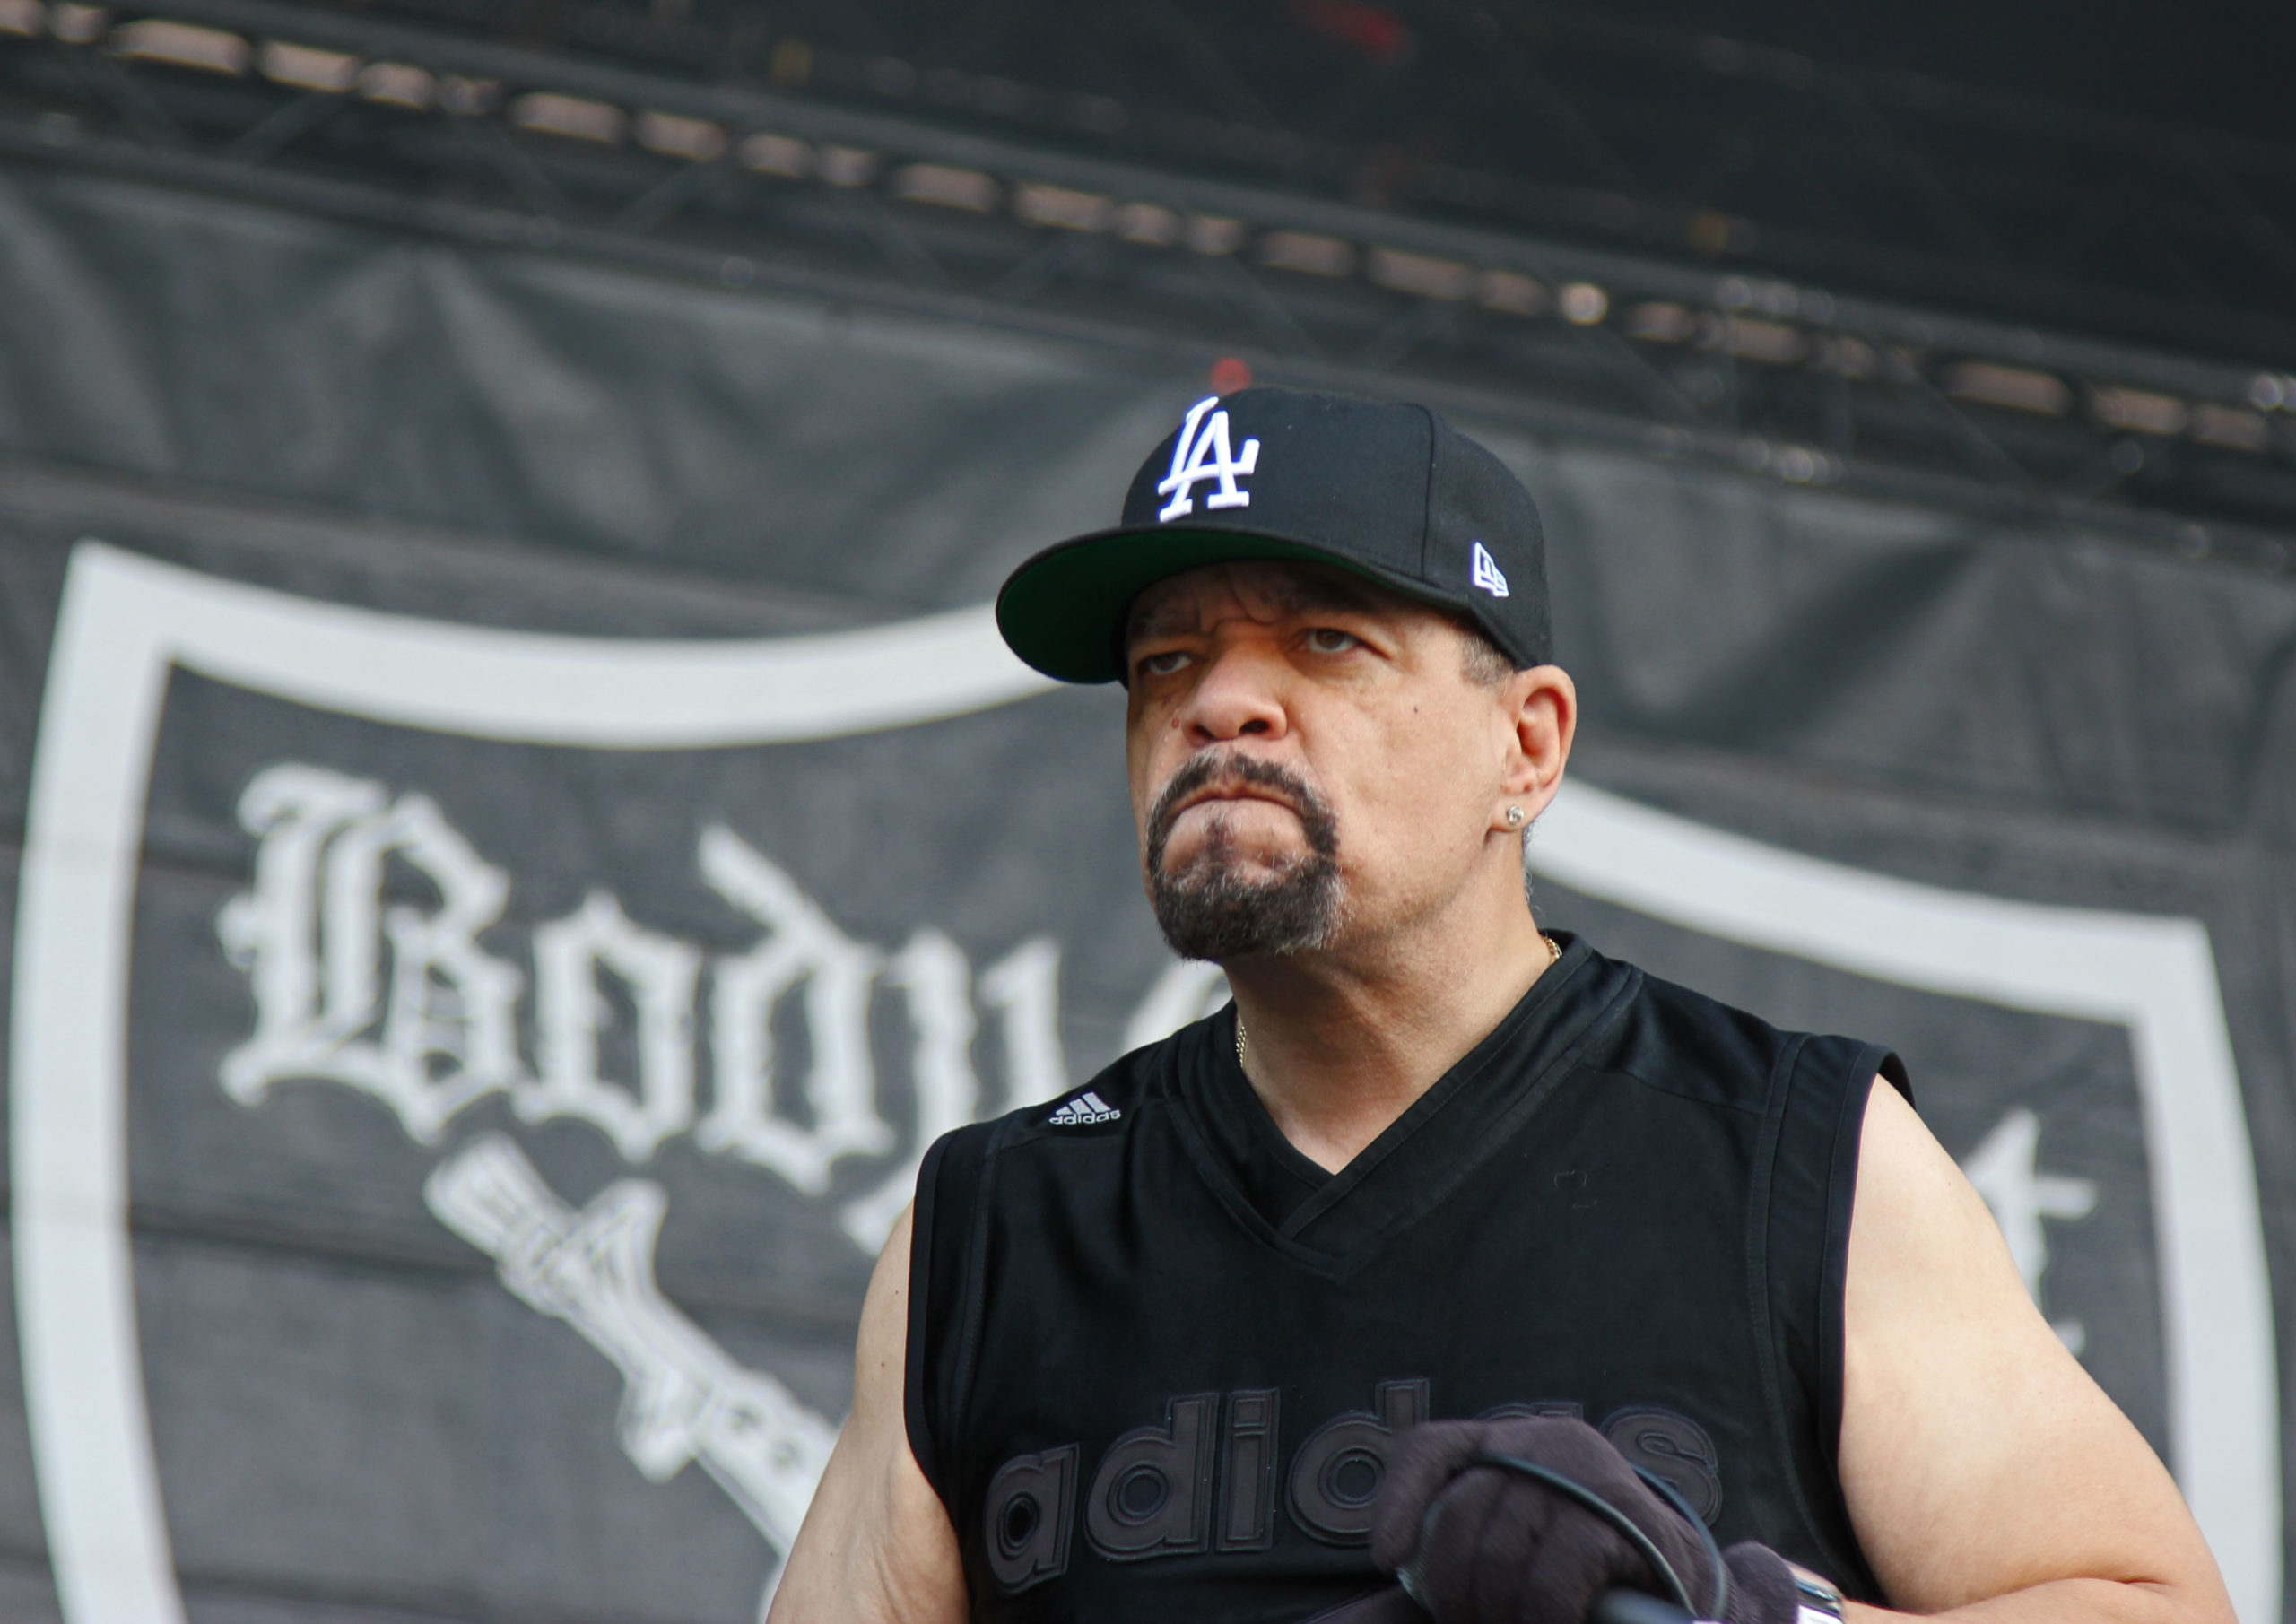 Body Count feat. Ice-T, Rock im Park 2018